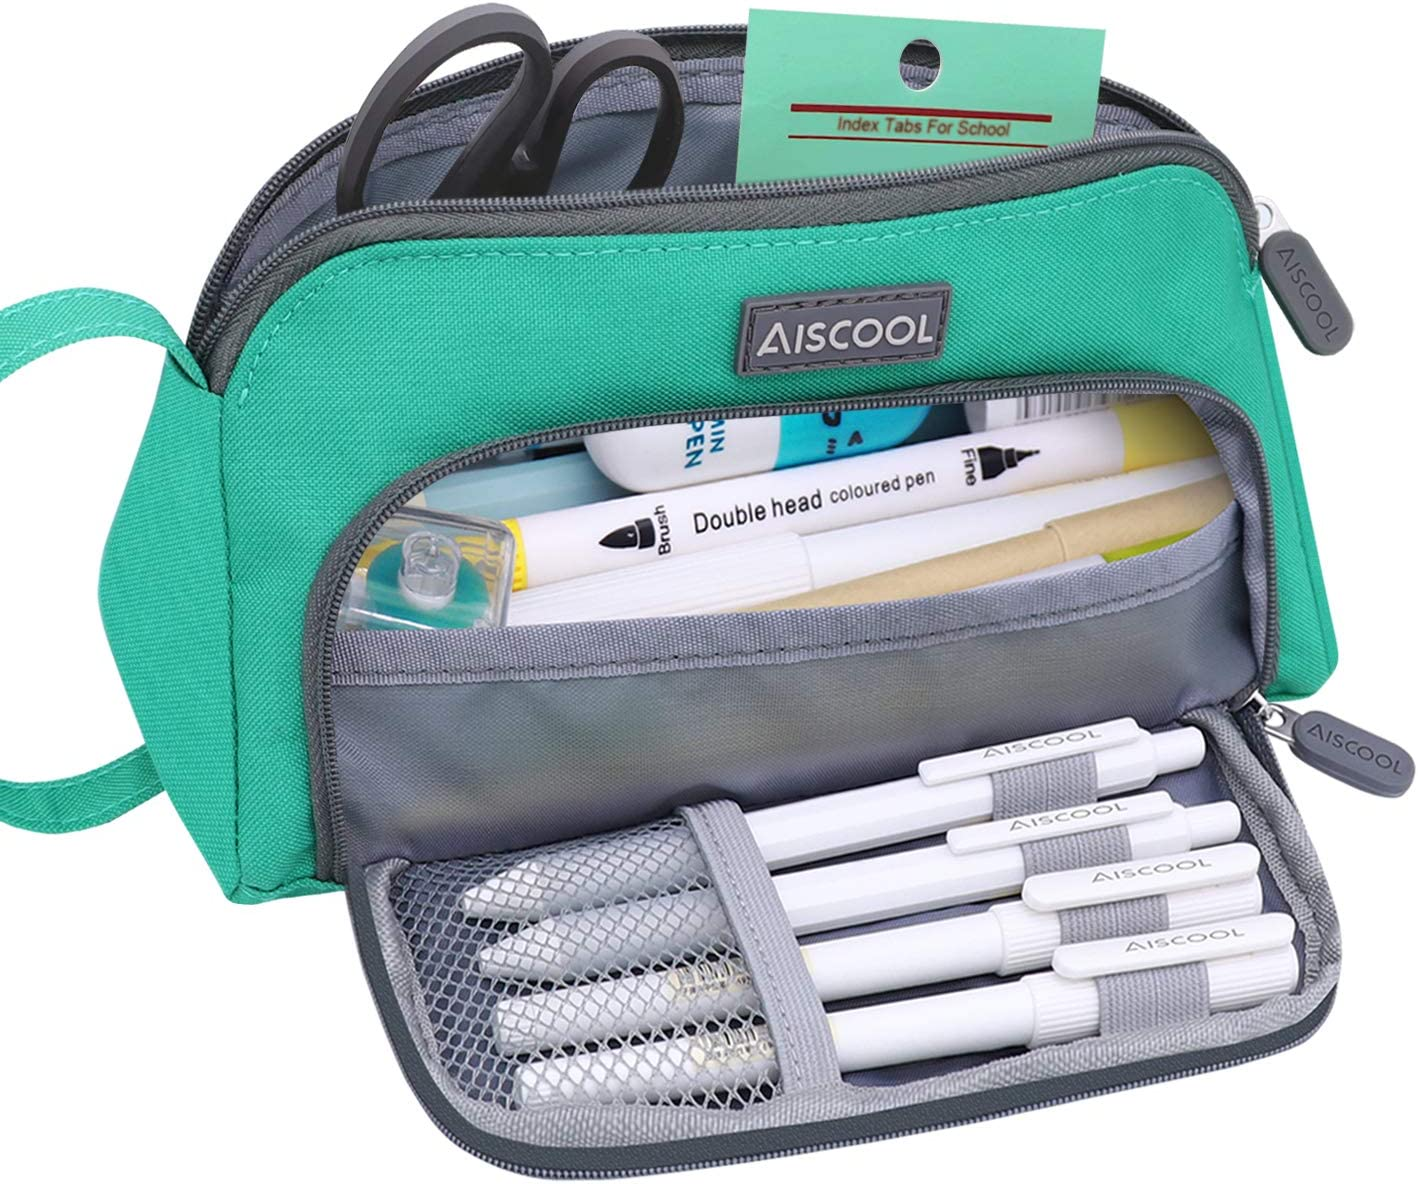 Aiscool Big Capacity Pencil Case Bag Pen Pouch Holder Large Storage Stationery Organizer for School Supplies Office College (Green)